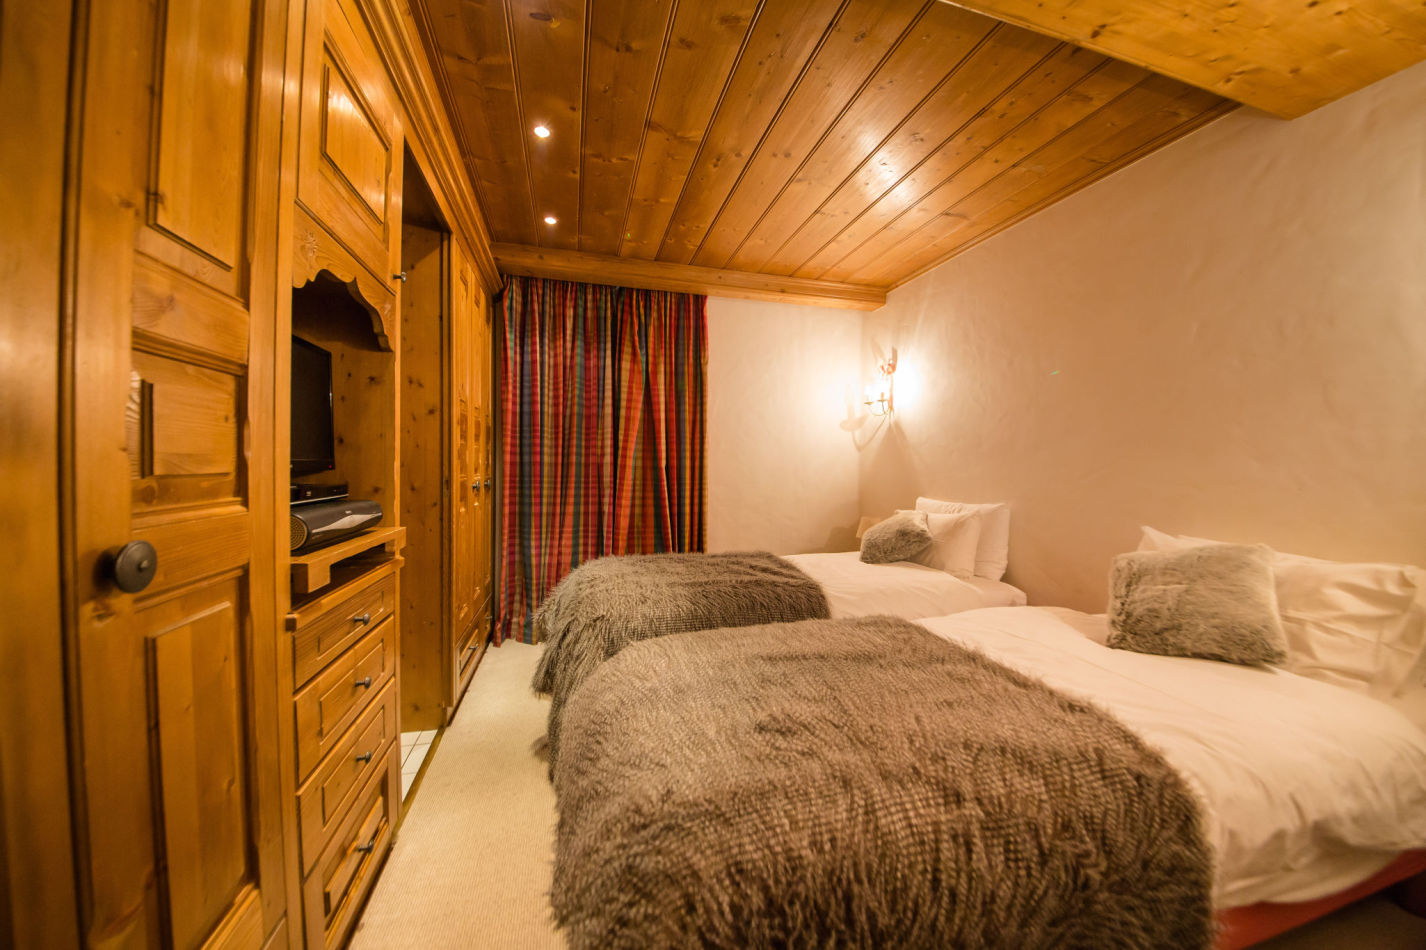 chalet-maisonnee-a-bedroom-image-7